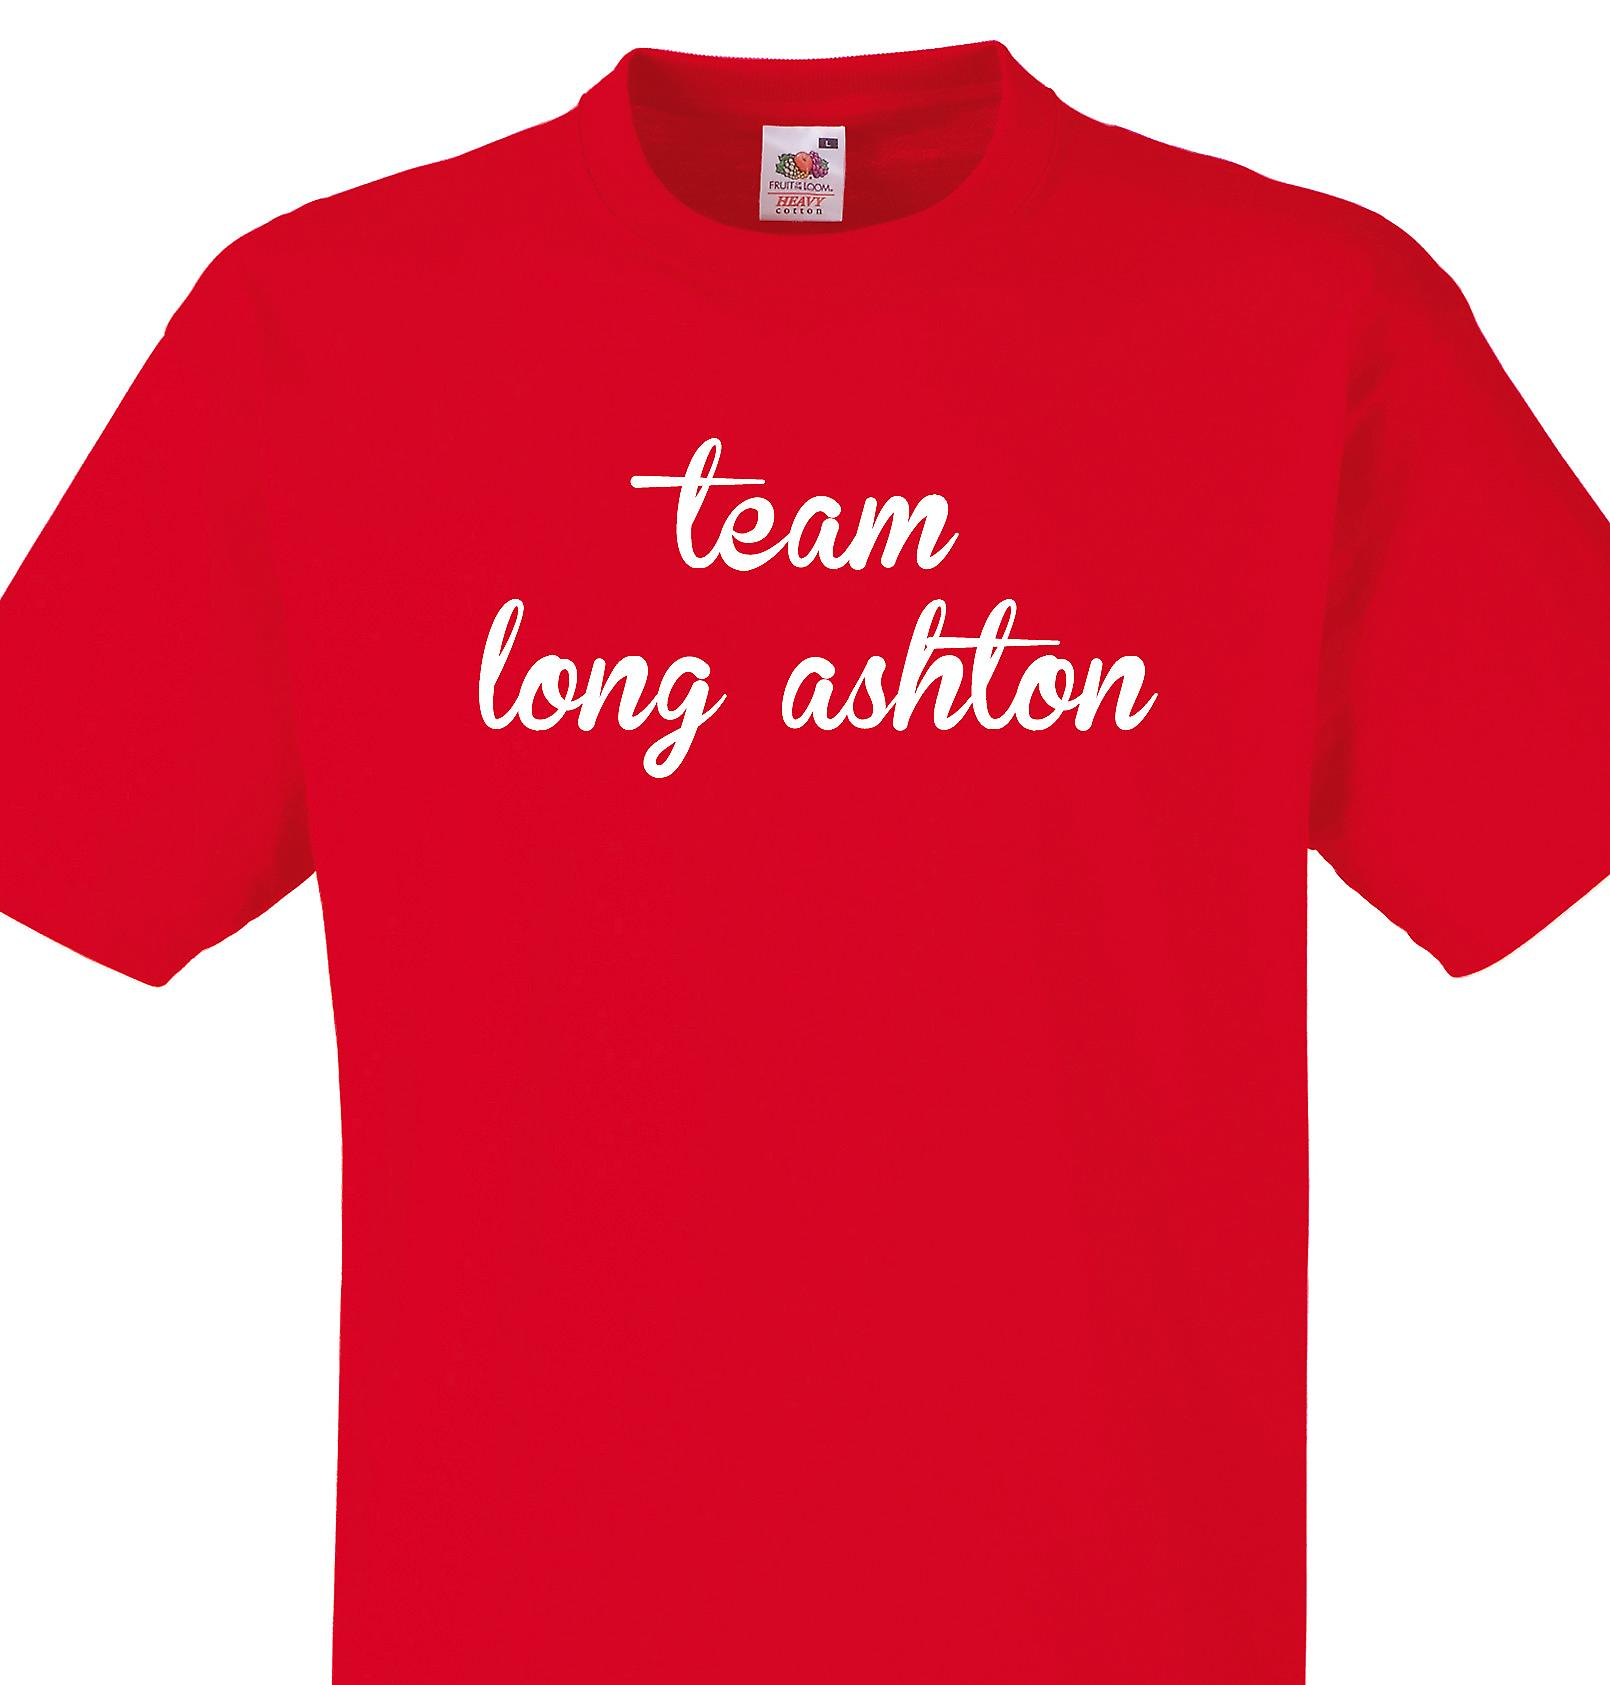 Team Long ashton Red T shirt